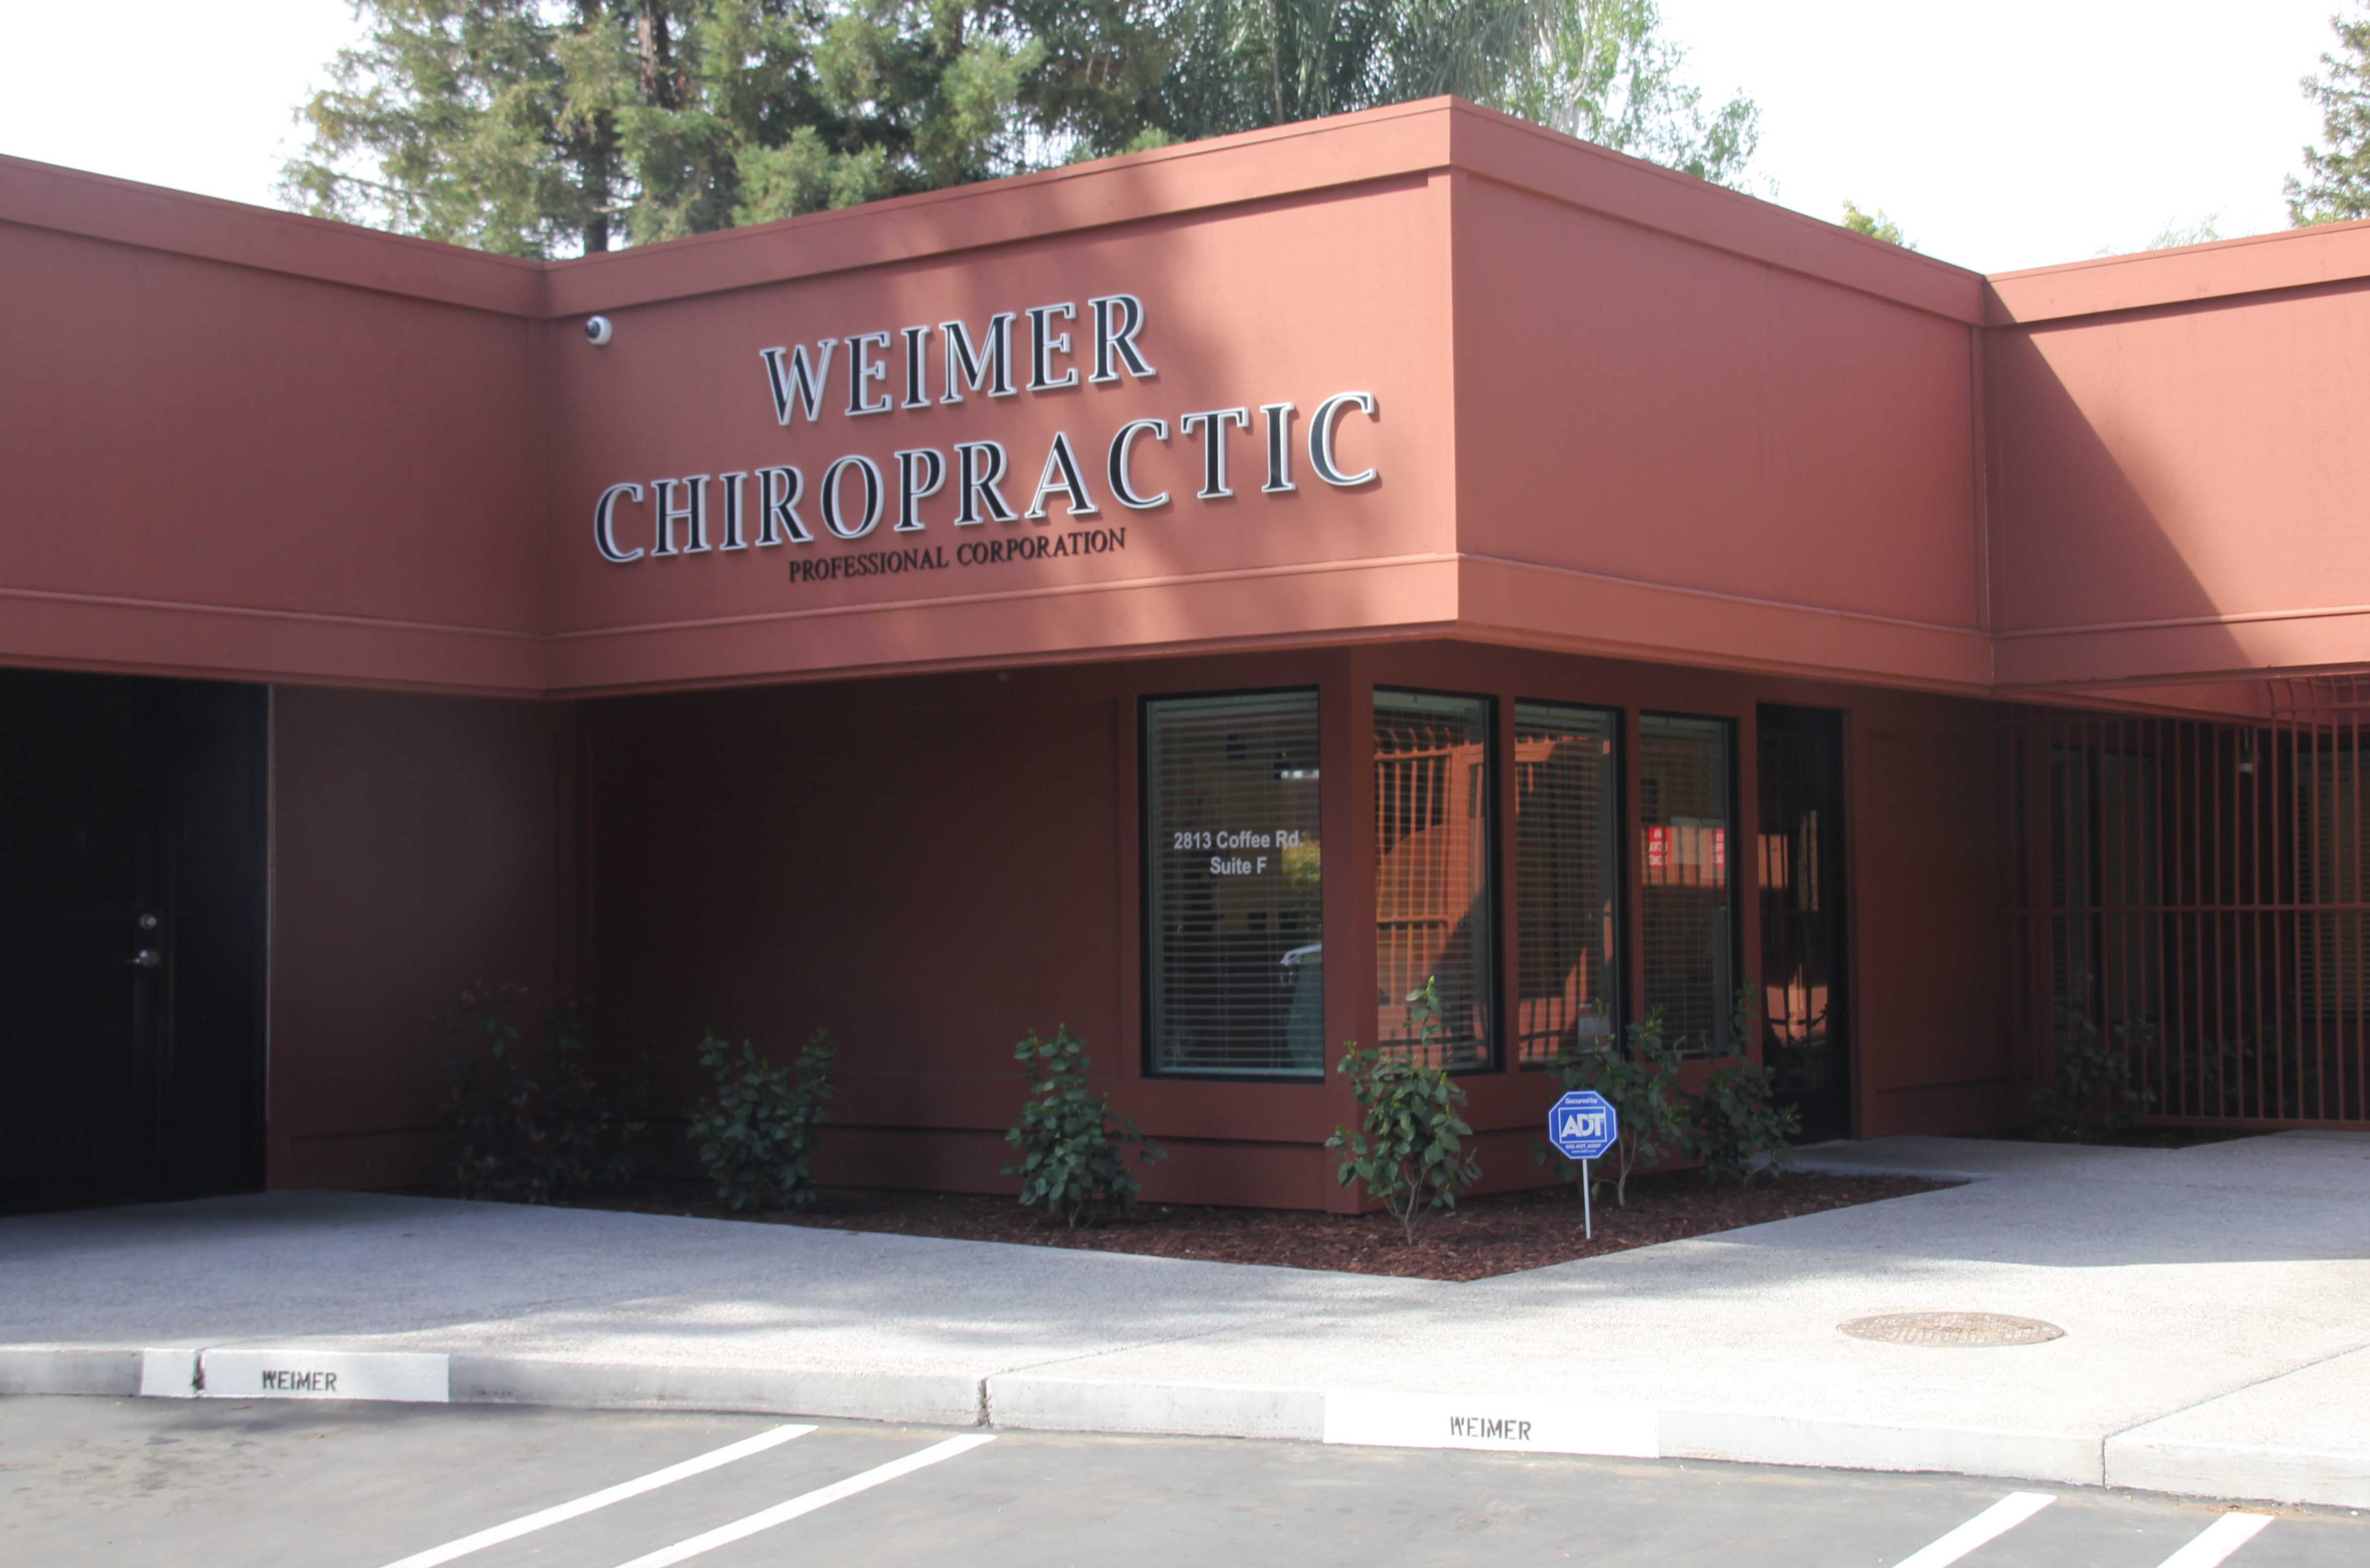 Weimer Chiropractic Front Entrance